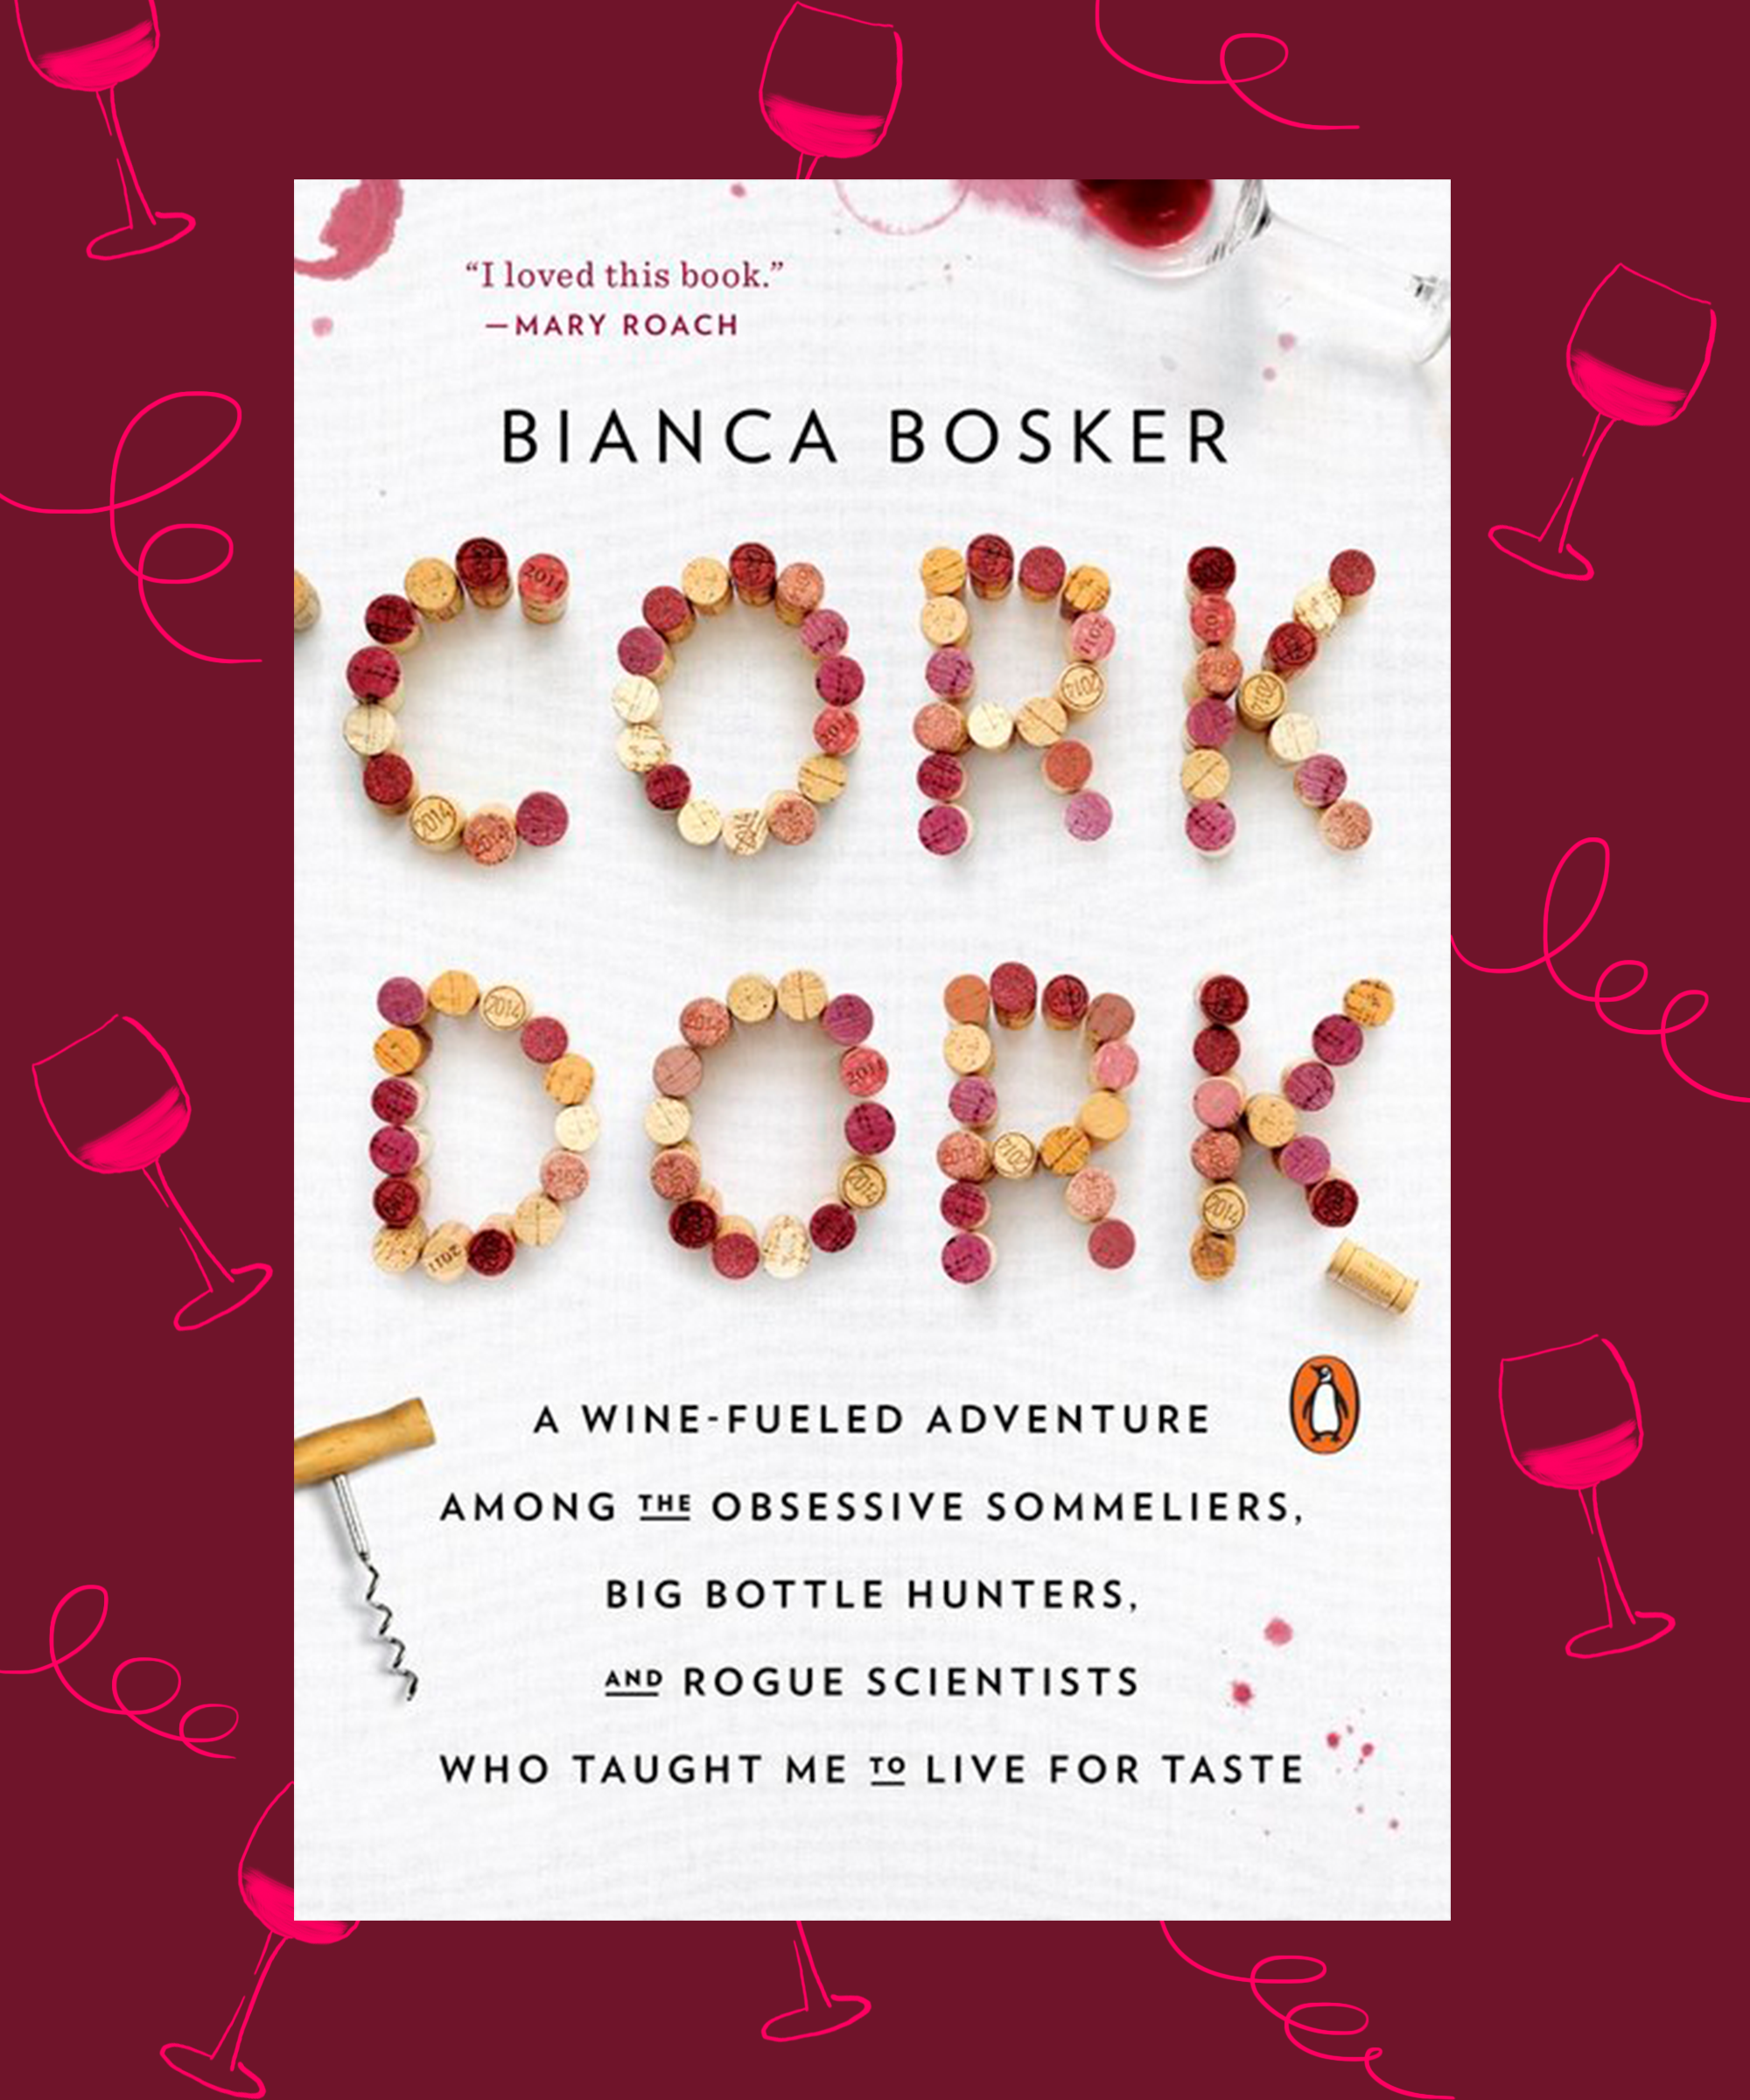 bianca bosker cork dork wine sommelier sexism essay it s 2017 and yet women are still fighting for equality data suggests it will take until 2152 to close the gender wage gap but it shouldn t take a